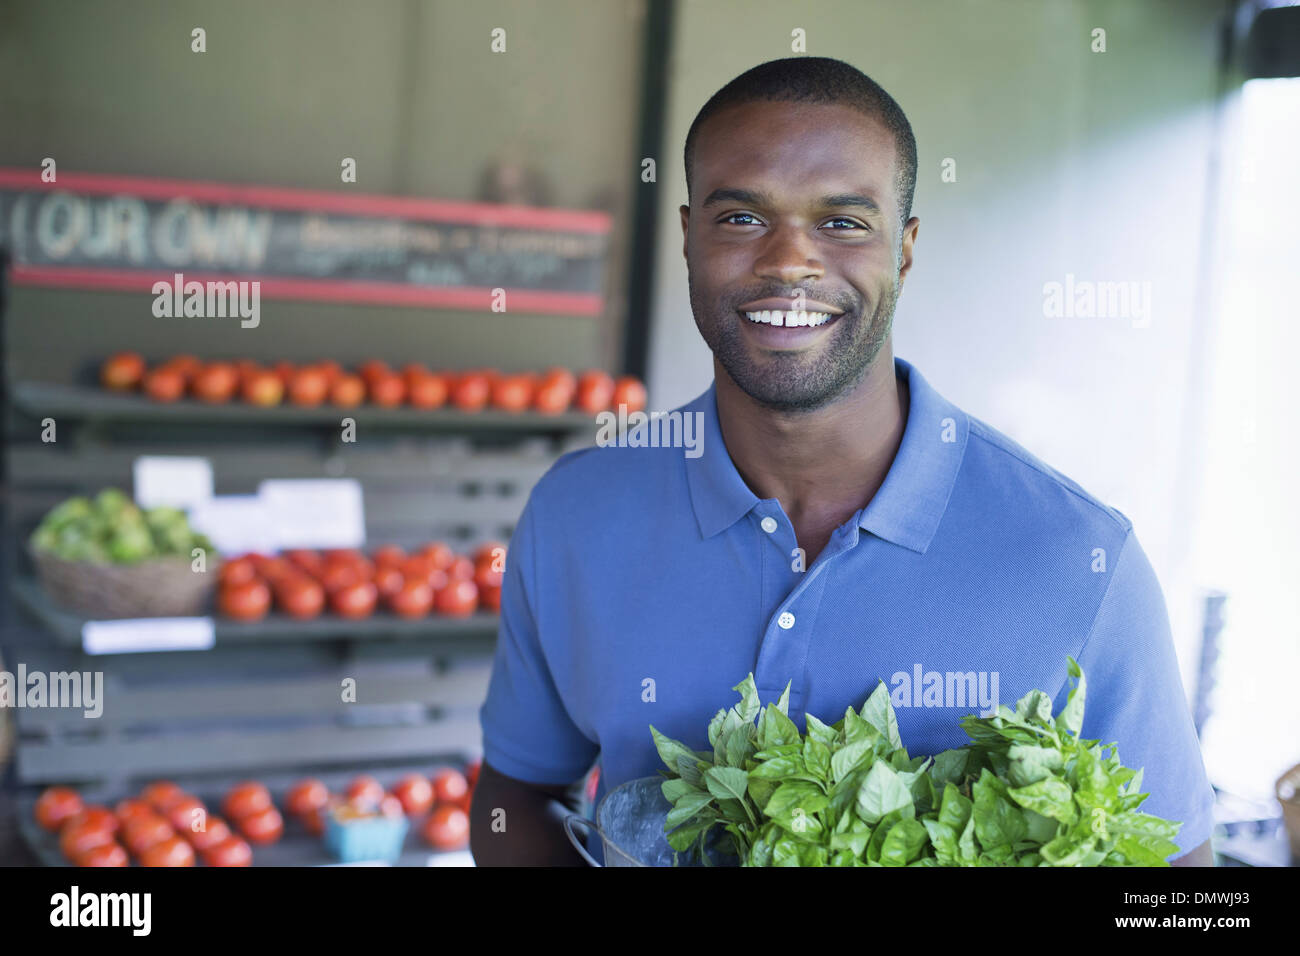 An organic fruit and vegetable farm. A man carrying vegetables. - Stock Image